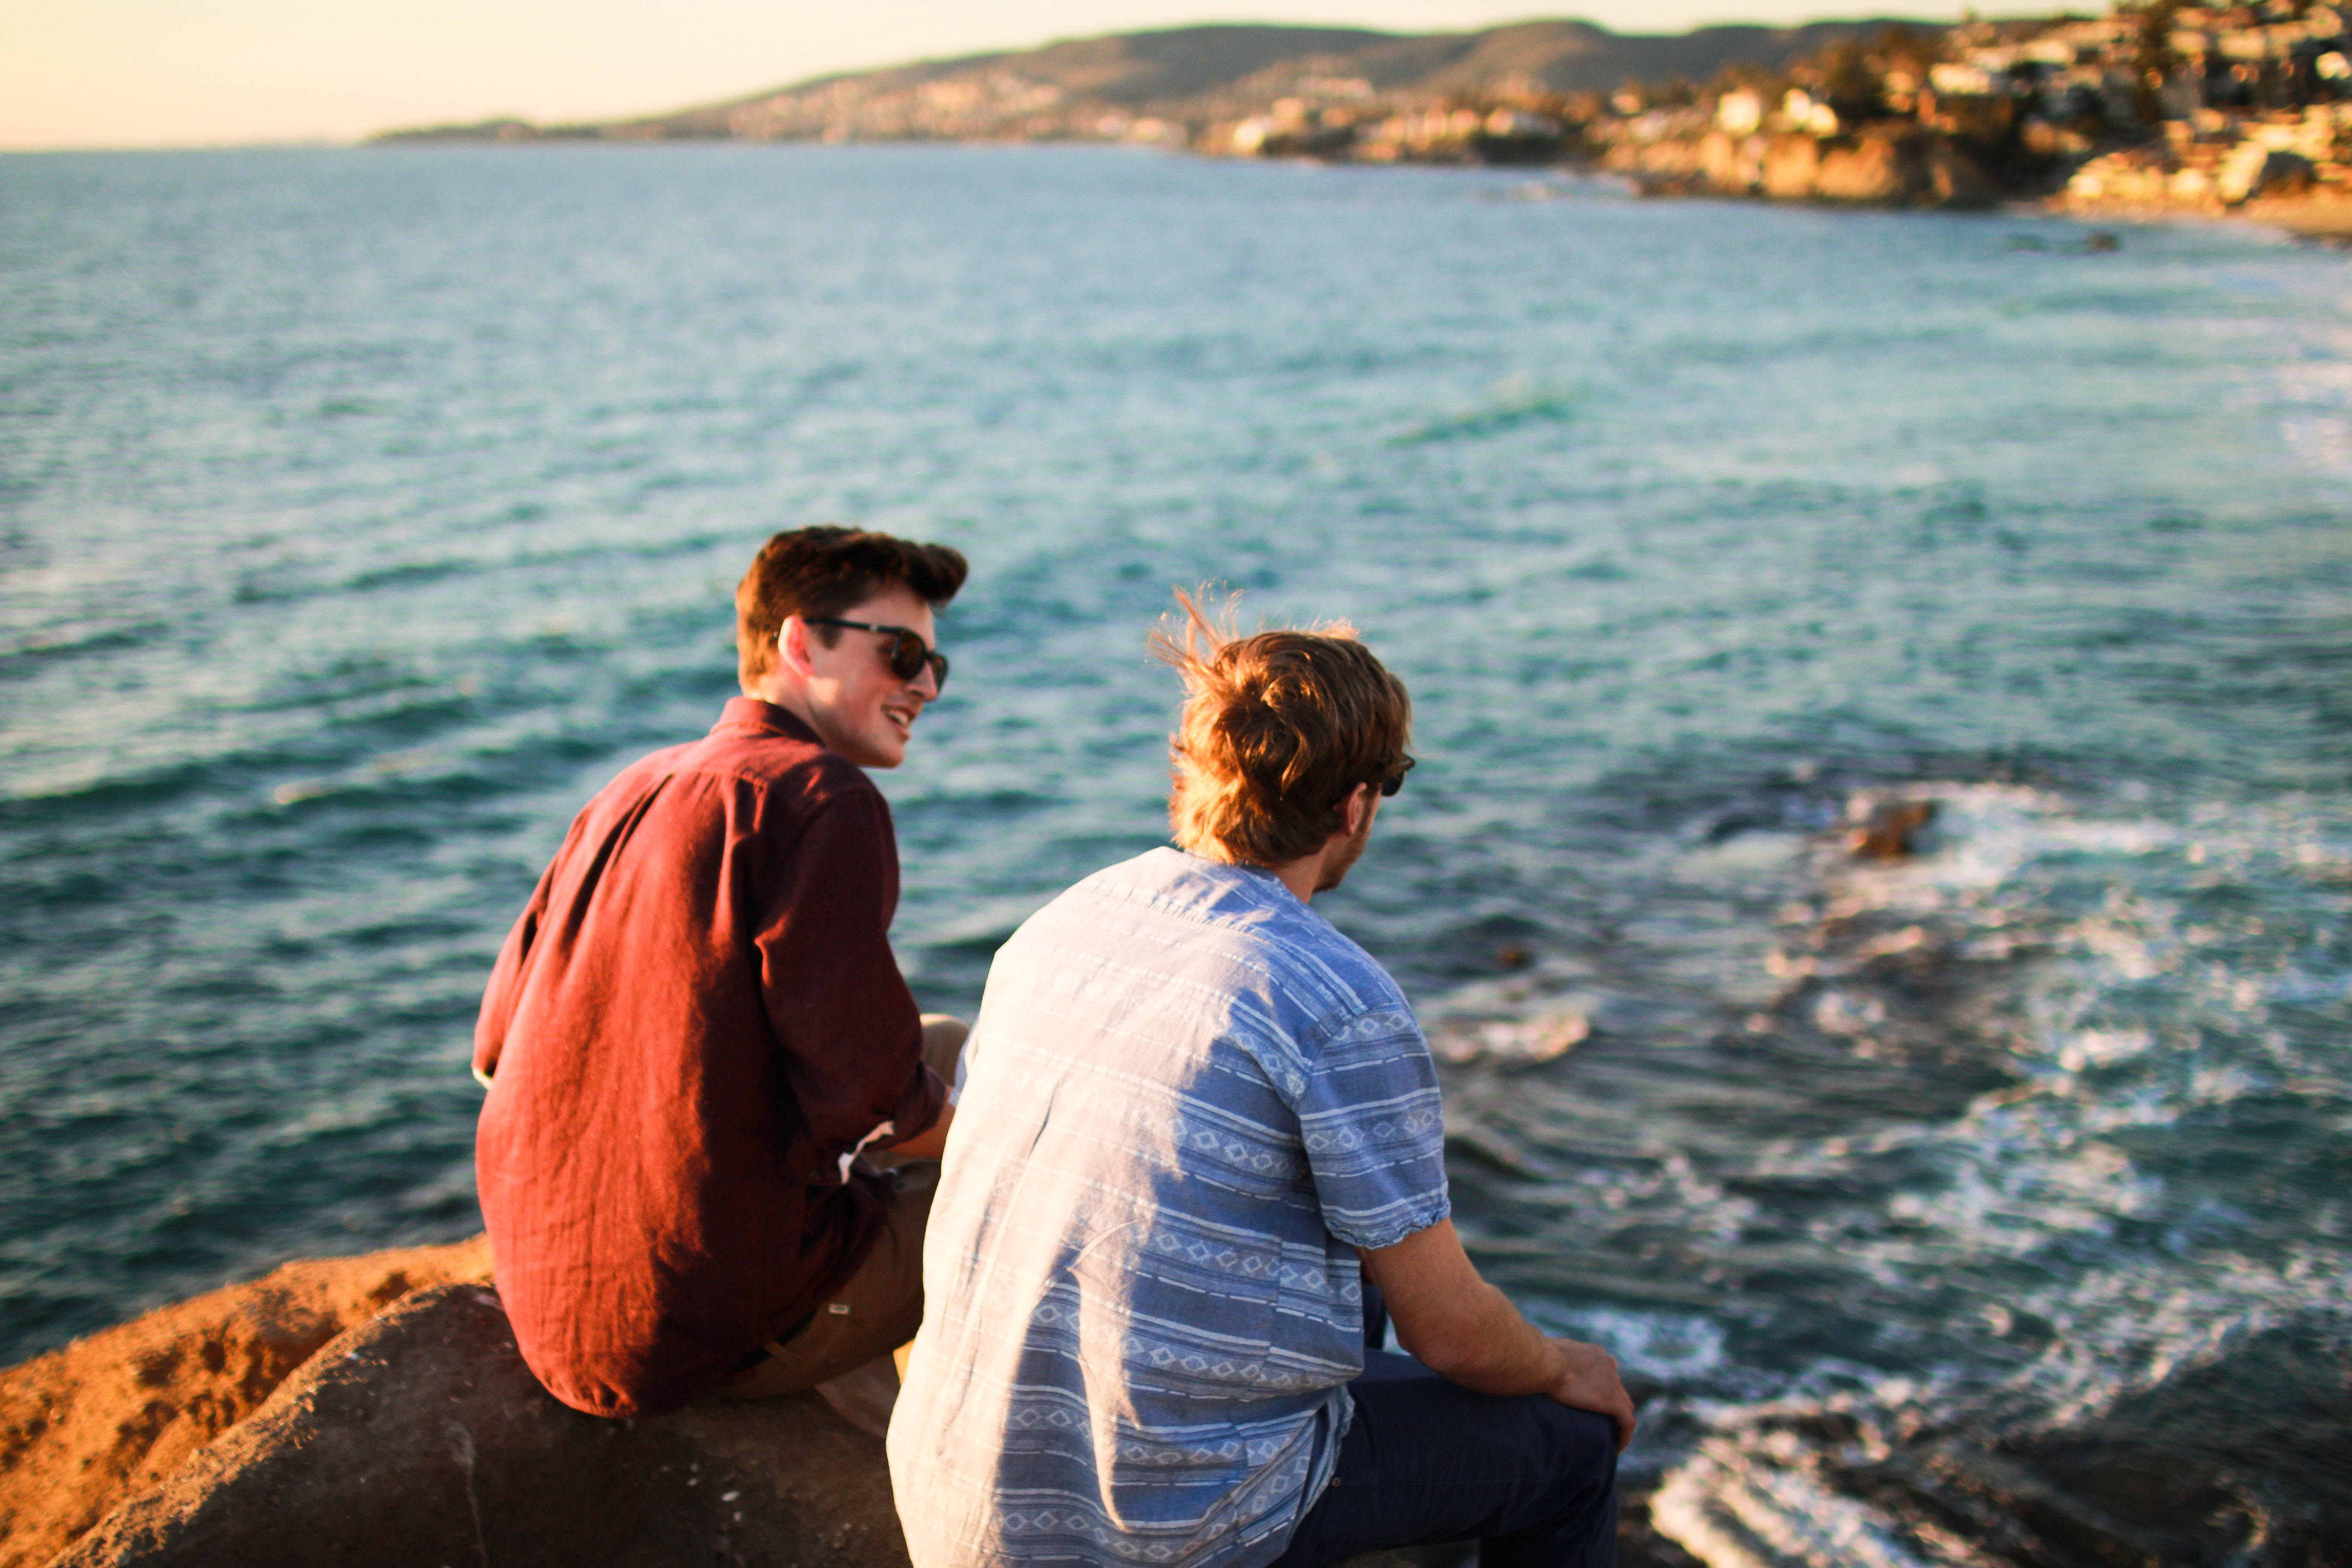 Two guys sitting on a rock and having a conversation by the seashore of Laguna beach